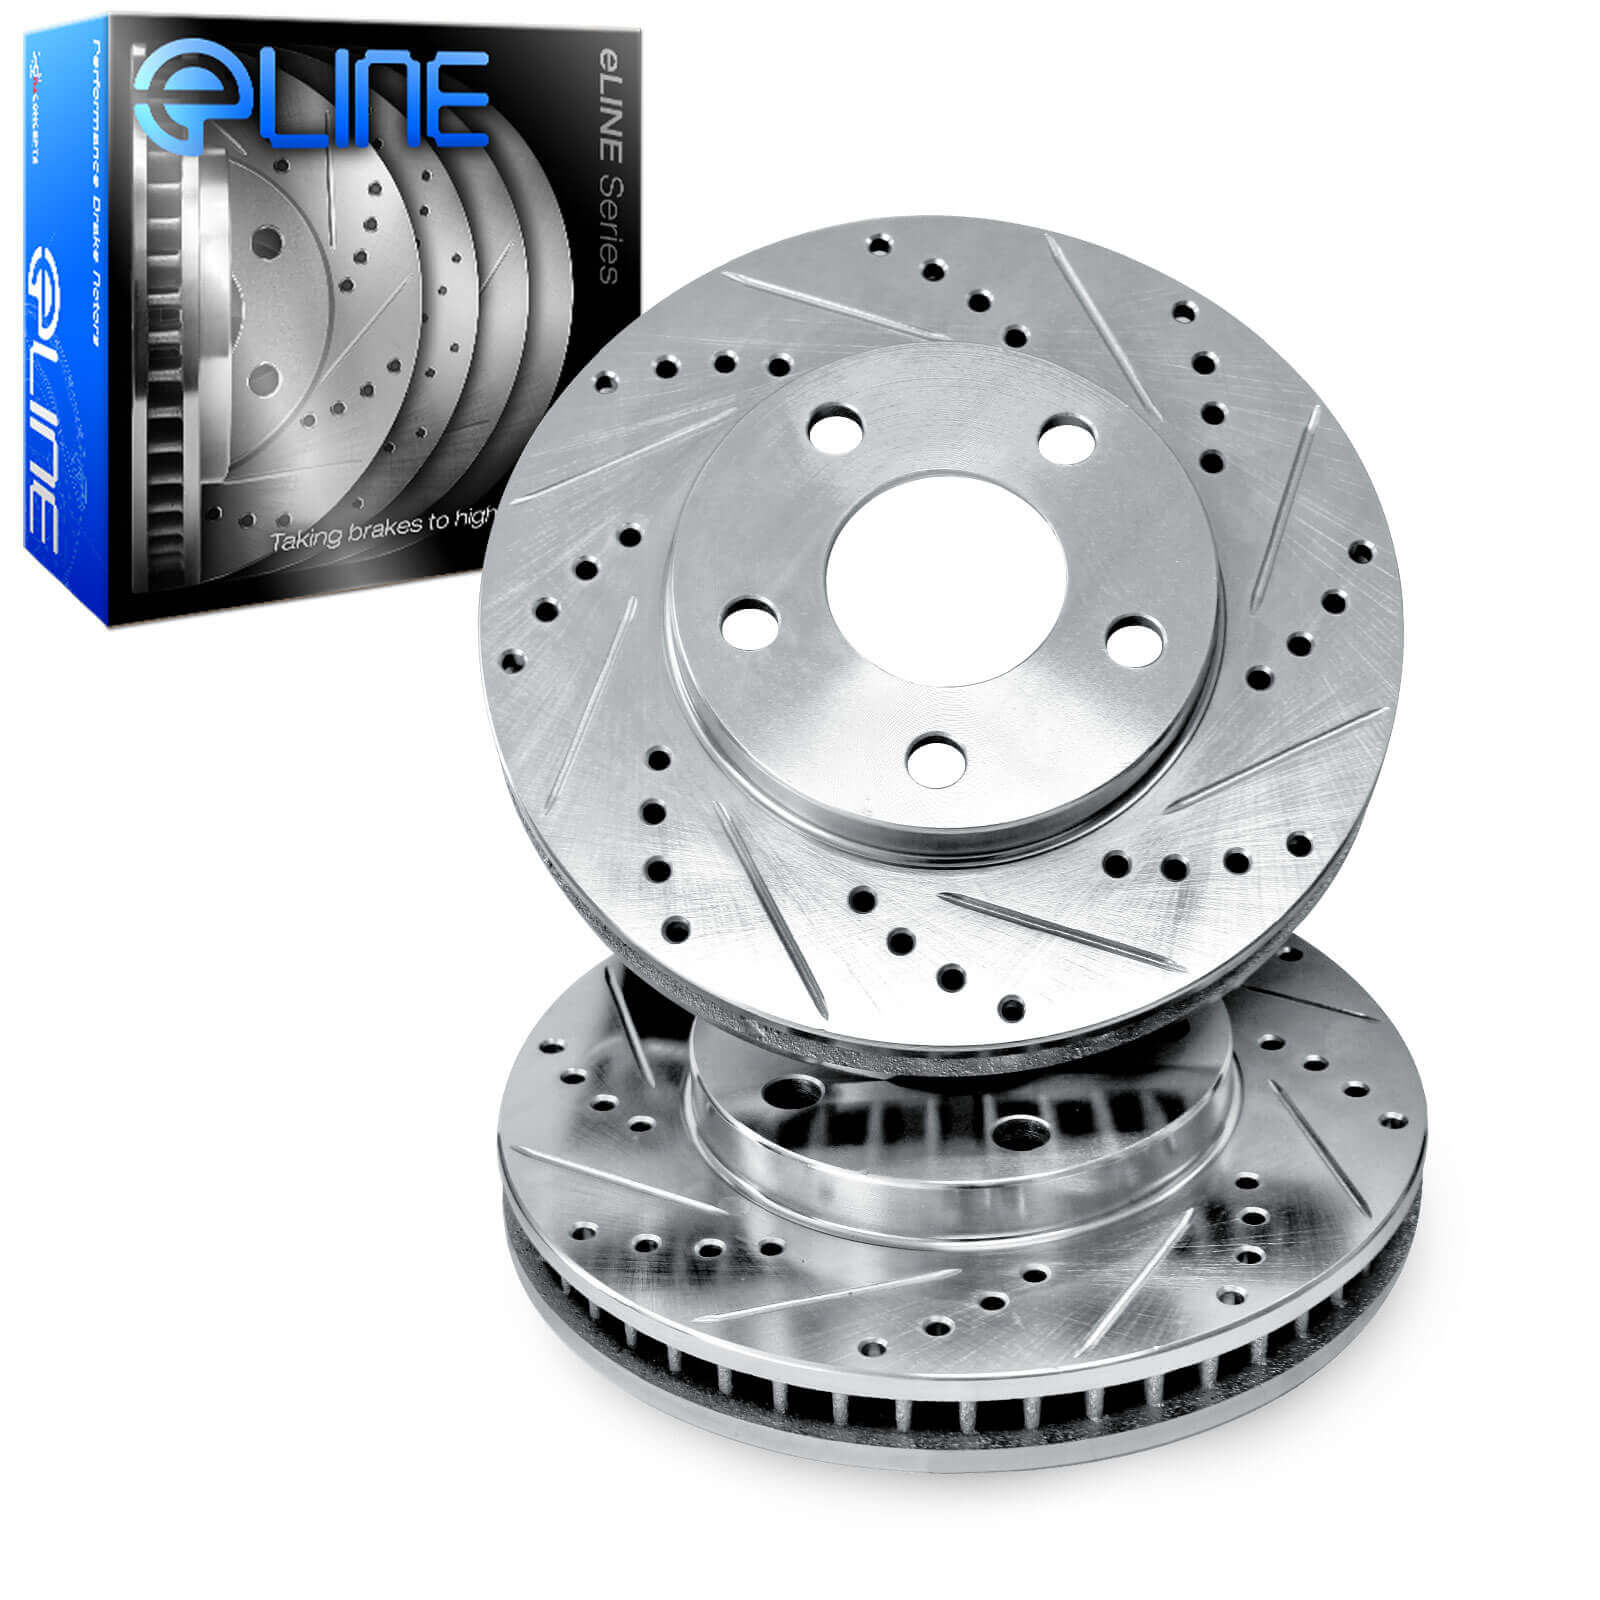 Rear Metallic Brake Pads /& 2 Discs Rotors Set Kit for Camaro SS Caddy CTS-V